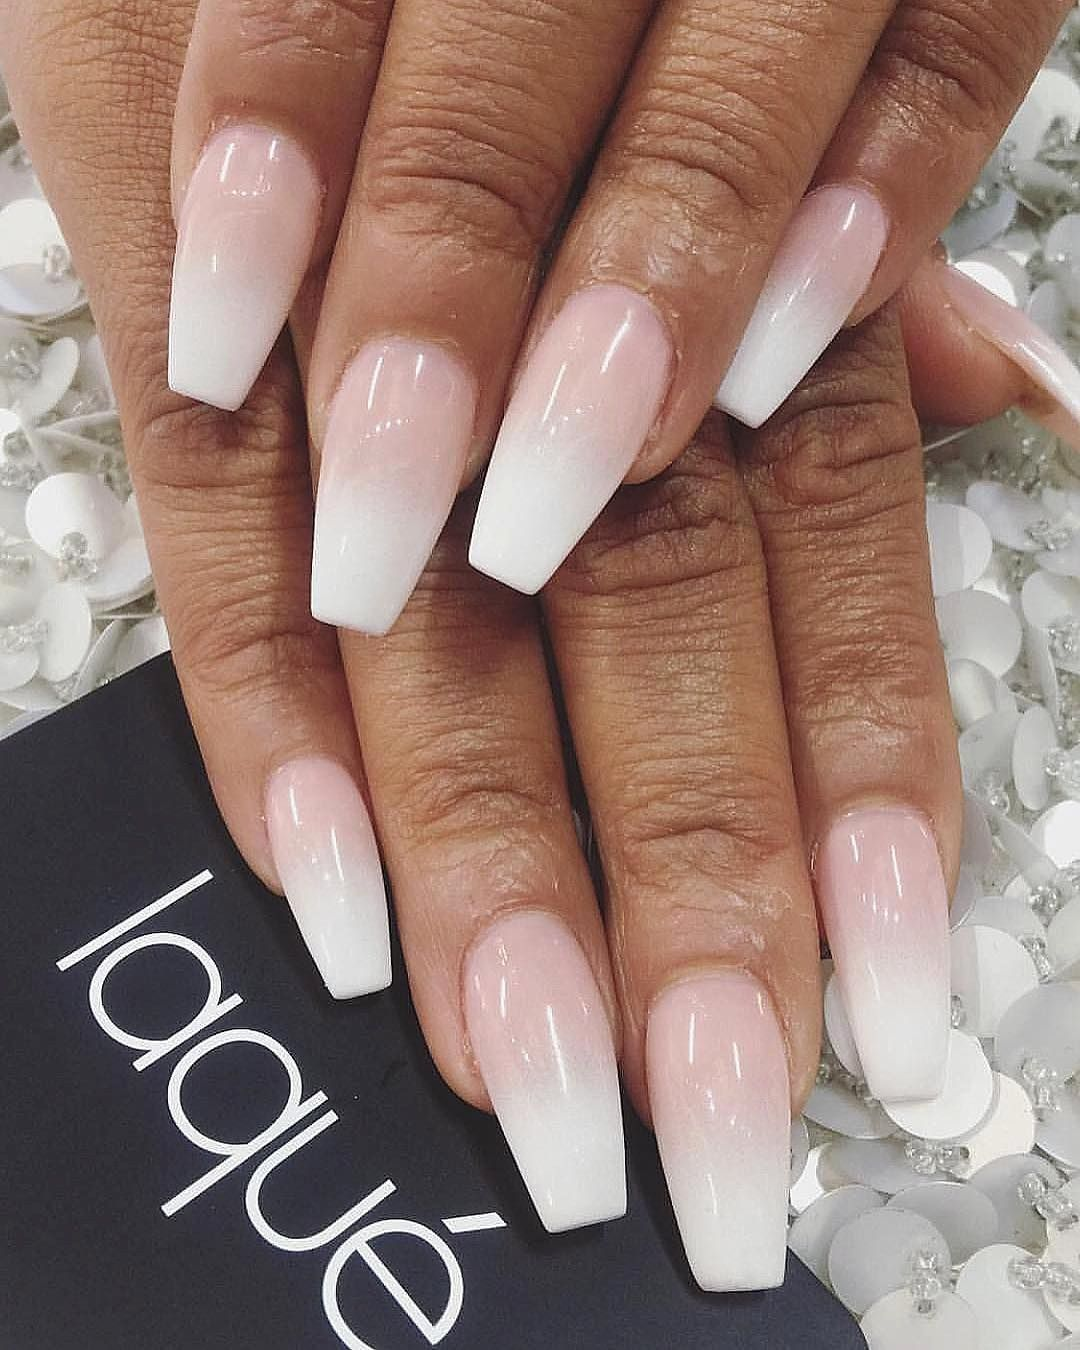 Full Set Nail Designs Luxury Full Set With Ombre 35 Full Set 10 Ombre Total 45 In 2020 Full Set Acrylic Nails Full Set Acrylic Nail Extensions Acrylic